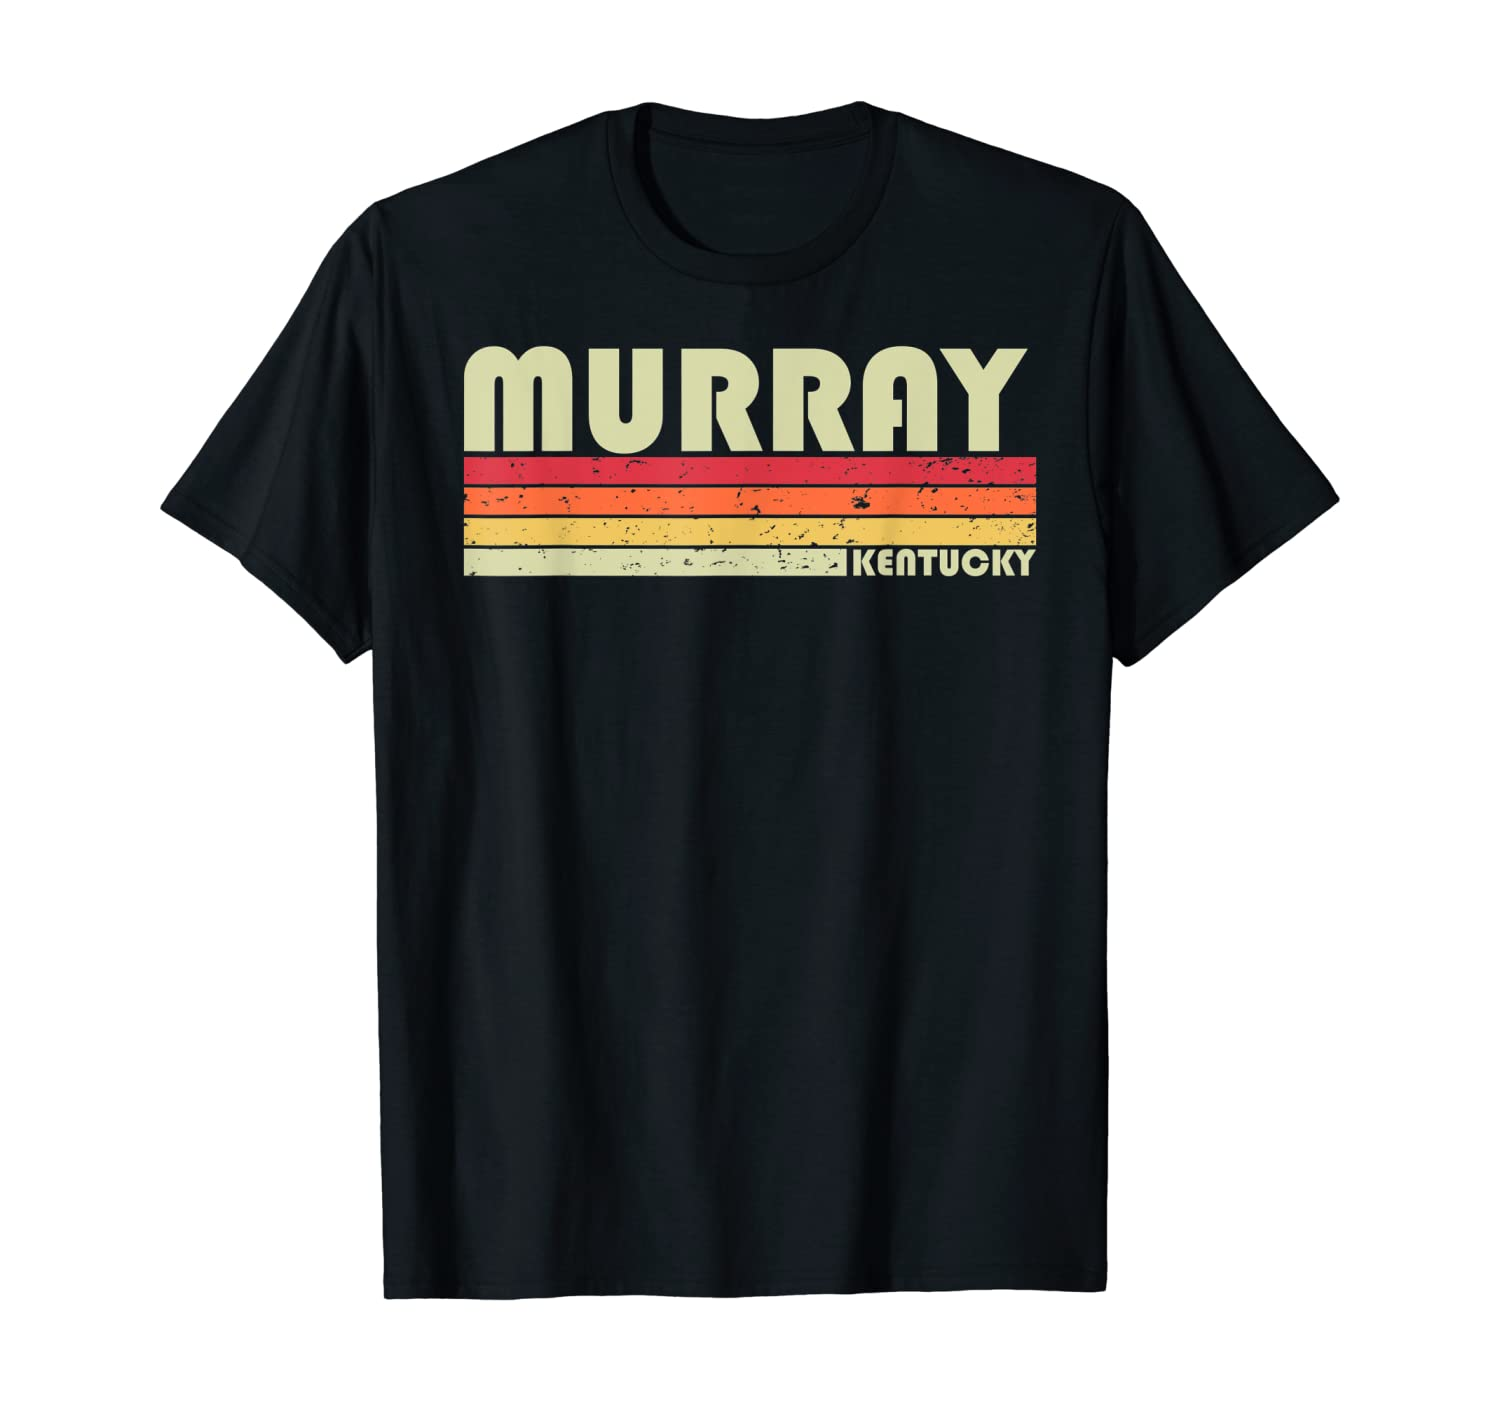 MURRAY KY KENTUCKY Funny City Home Roots Gift Retro 70s 80s T-Shirt